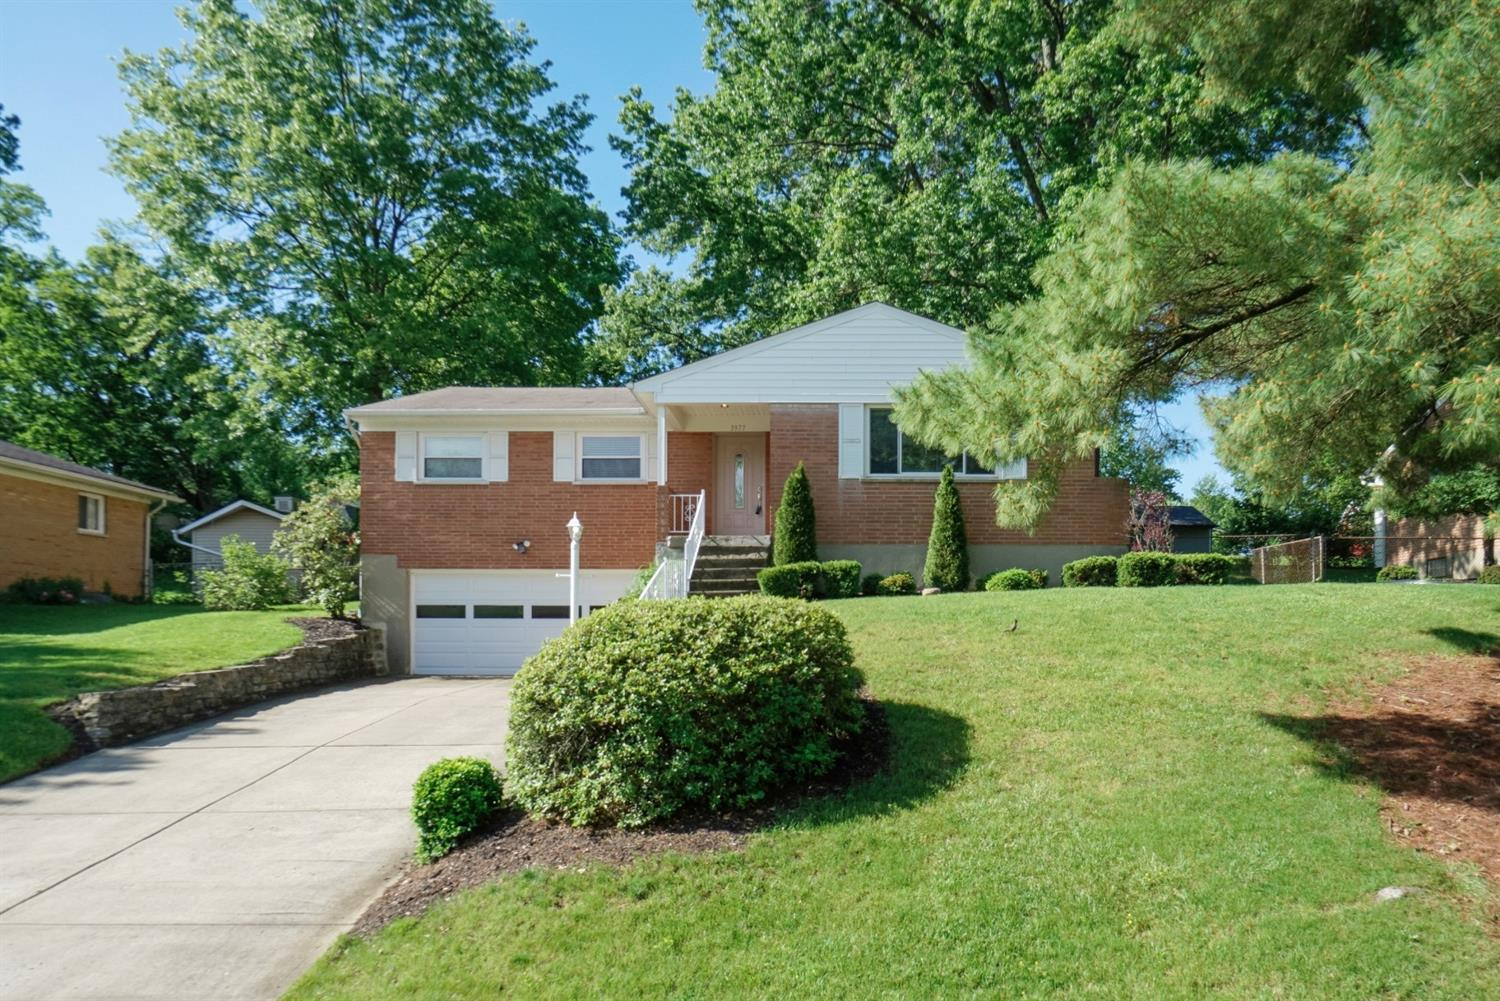 3977 Tramore Dr Dillonvale, OH